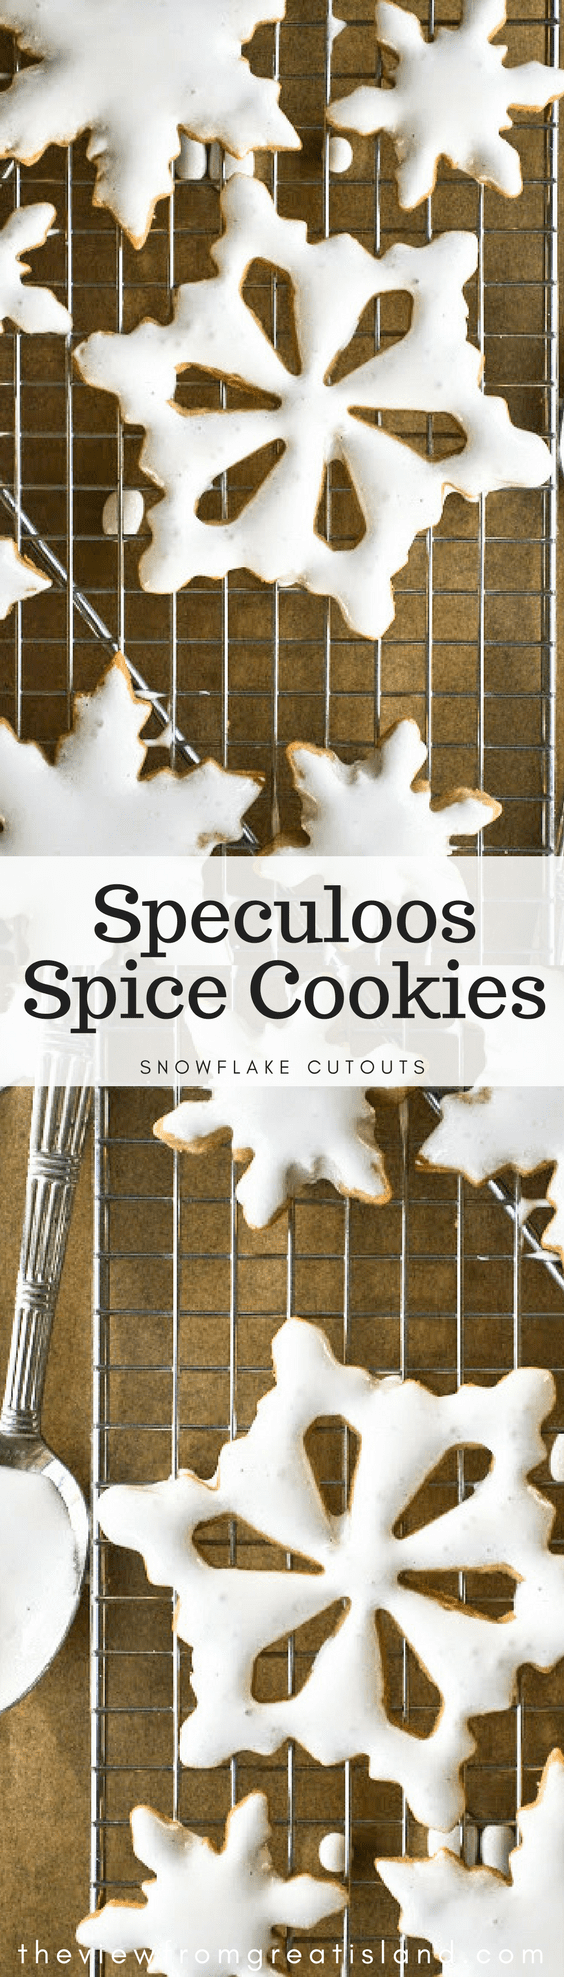 Speculoos Spice Cookies are based on a classic Dutch recipe that makes perfect cut out cookies ~ these pretty snowflakes will be the stars of your holiday cookie assortment! #cookies #holidaycookies #cutoutcookies #royalicing #Christmascookies #speculoos #spicecookies #dessert #Christmas #cookiecutters